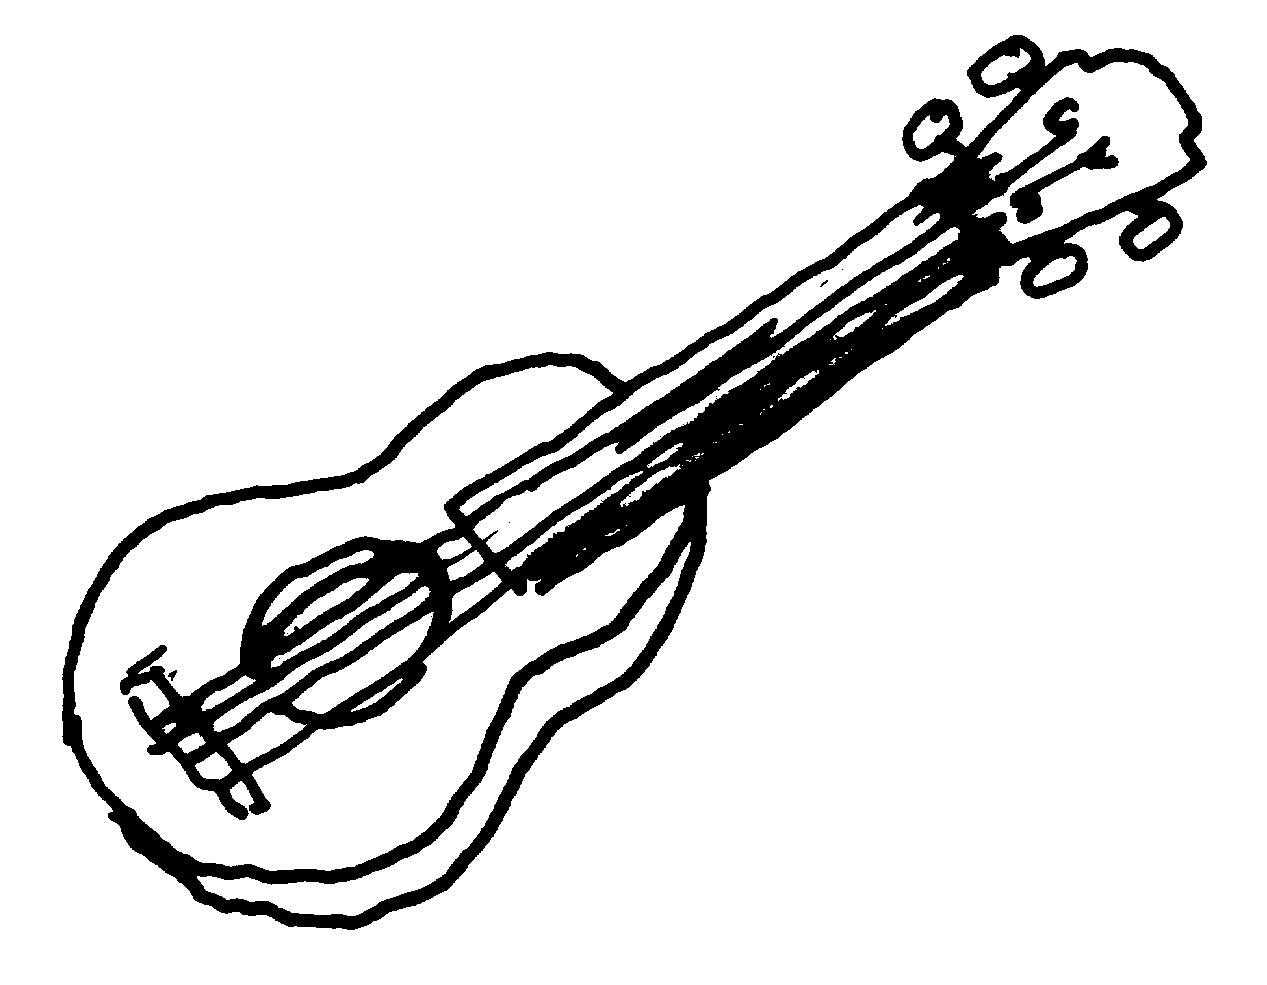 Guitar Clip Art... Music Instruments Clipart Black And White